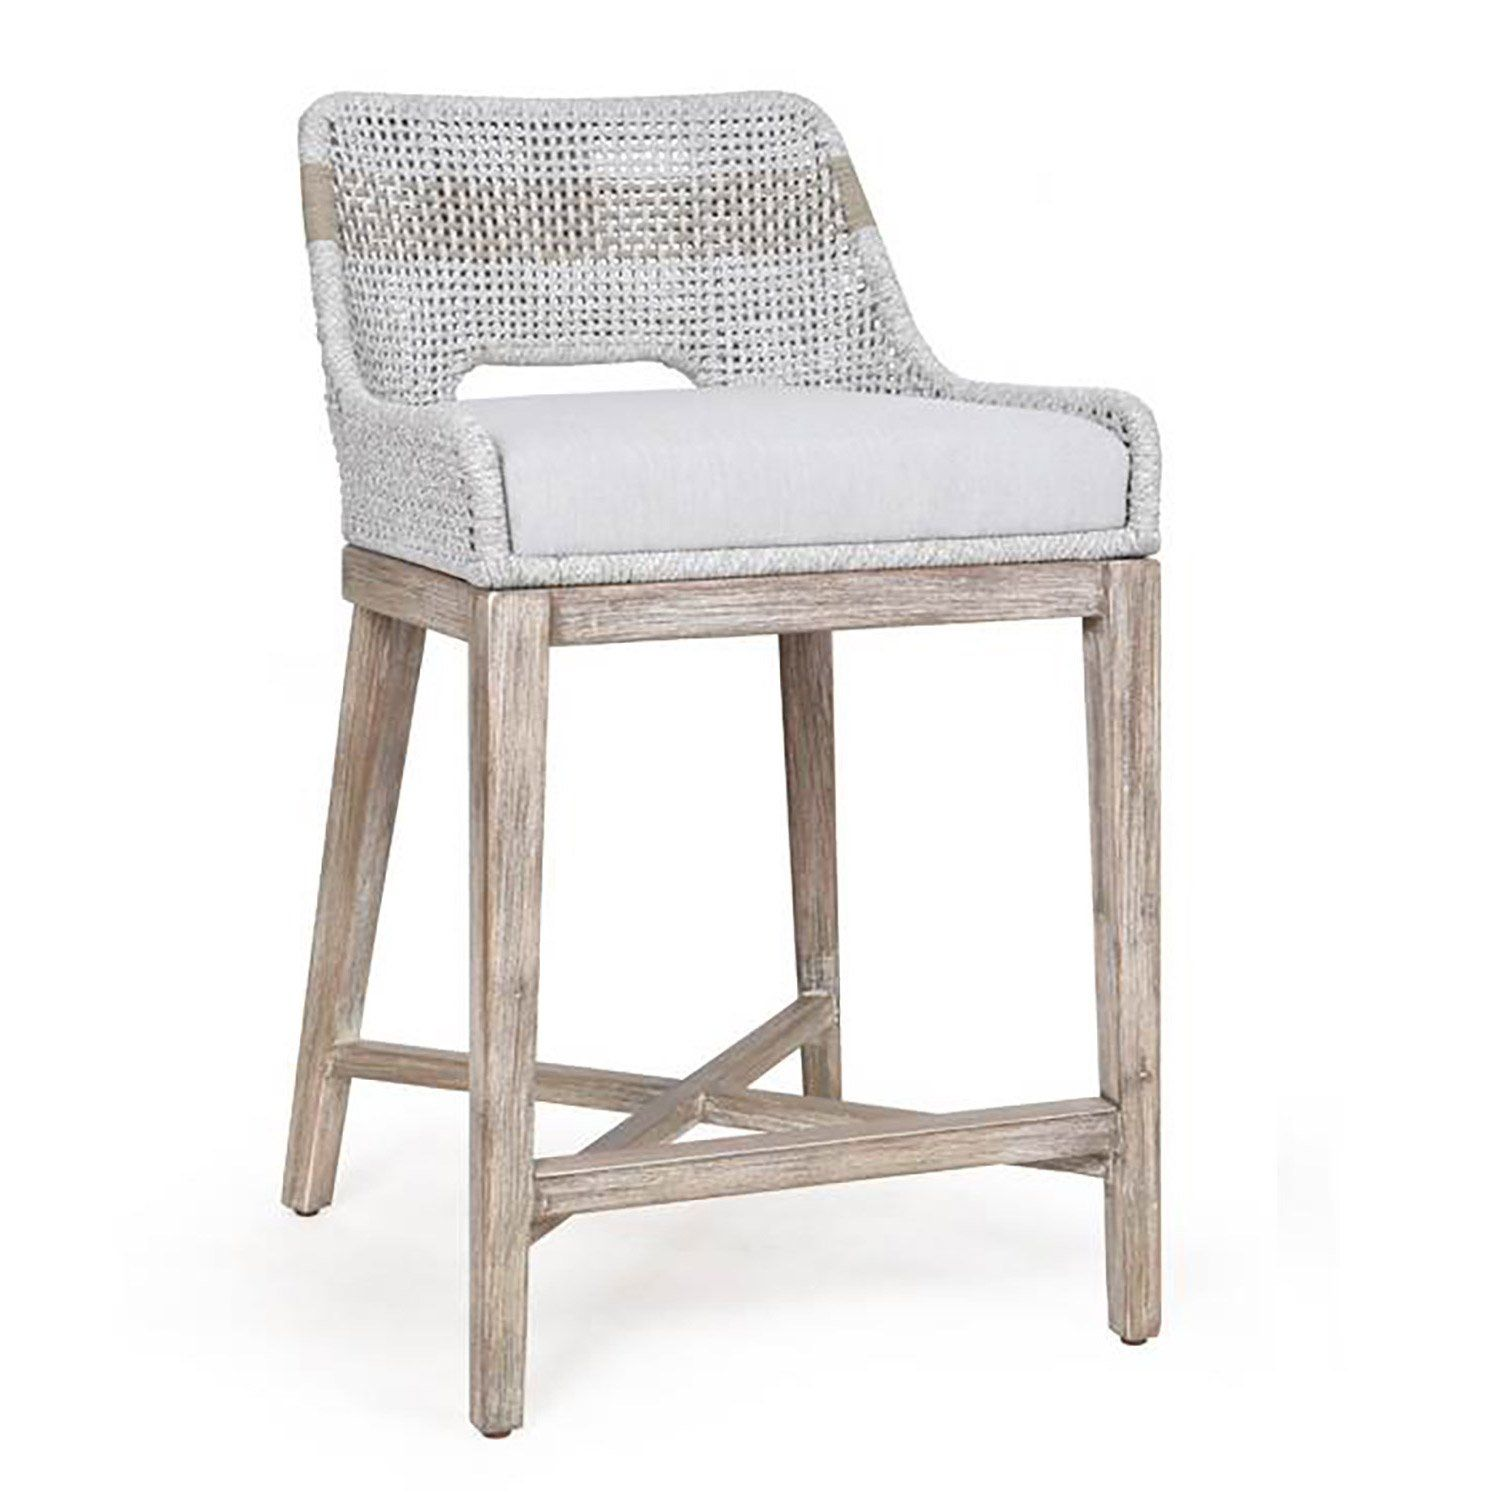 Tapestry Counter Stool Counter Stools Counter Stools With Backs Stool